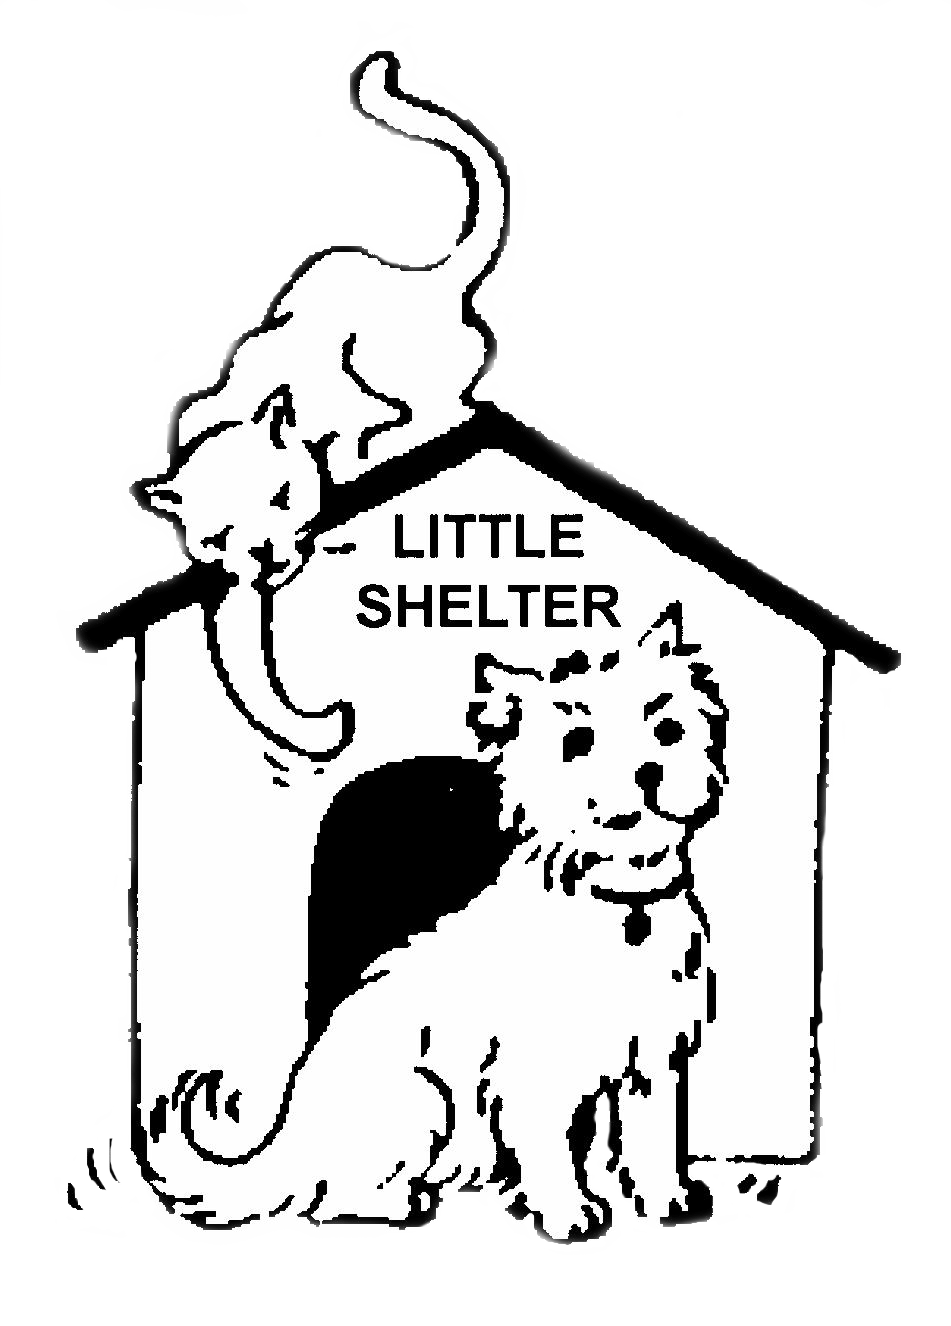 Little Shelter Animal Rescue & Adoption Center - Huntington